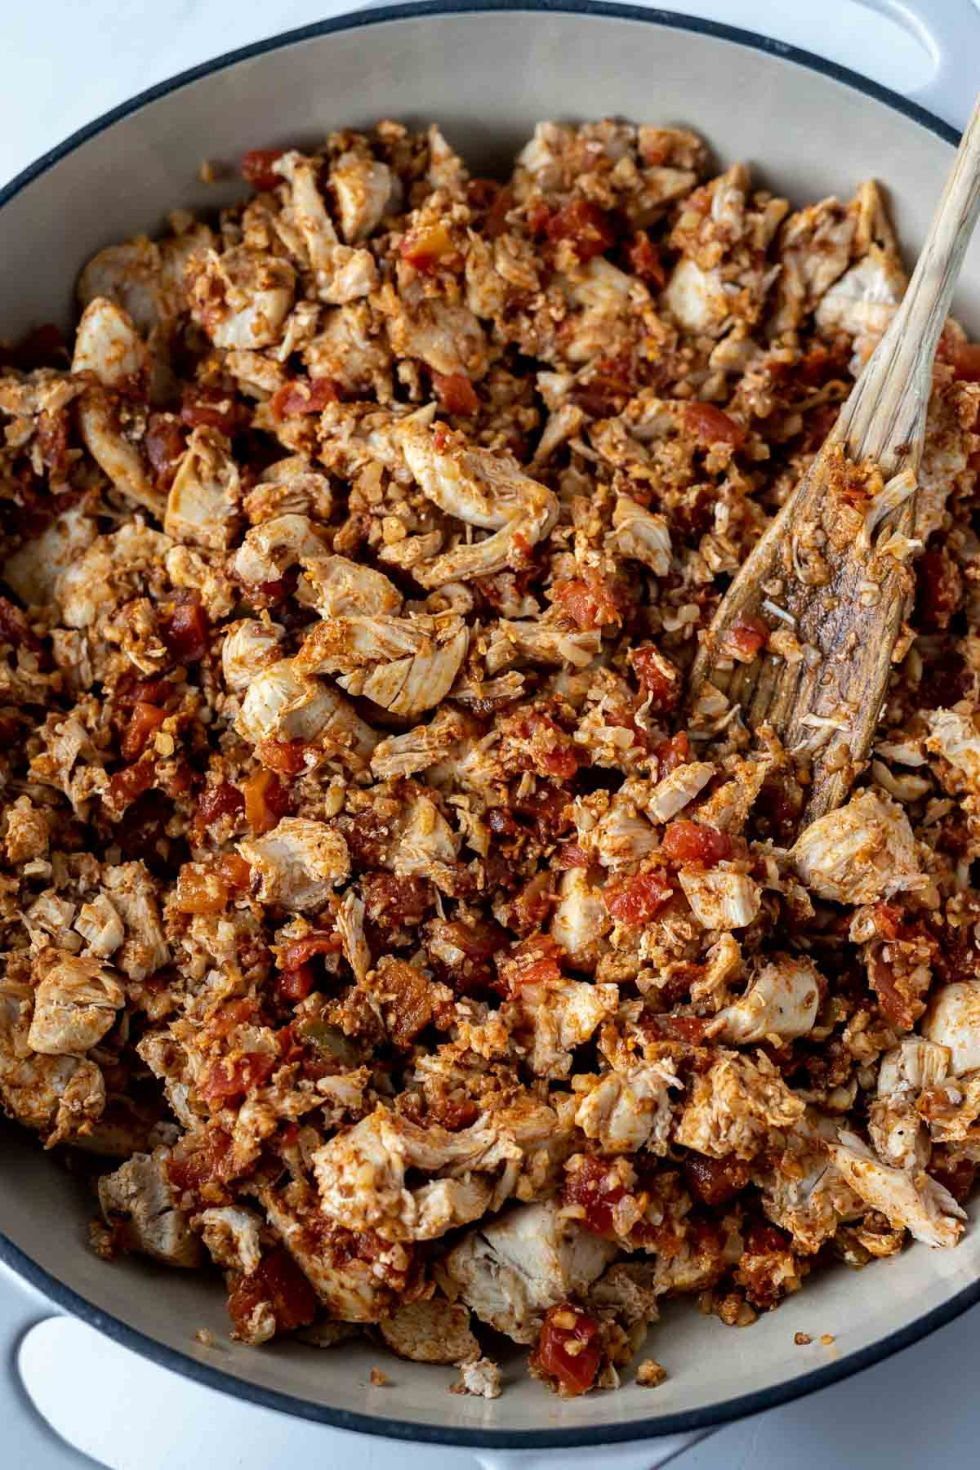 chicken, tomatoes and seasoning in pan with wooden spoon